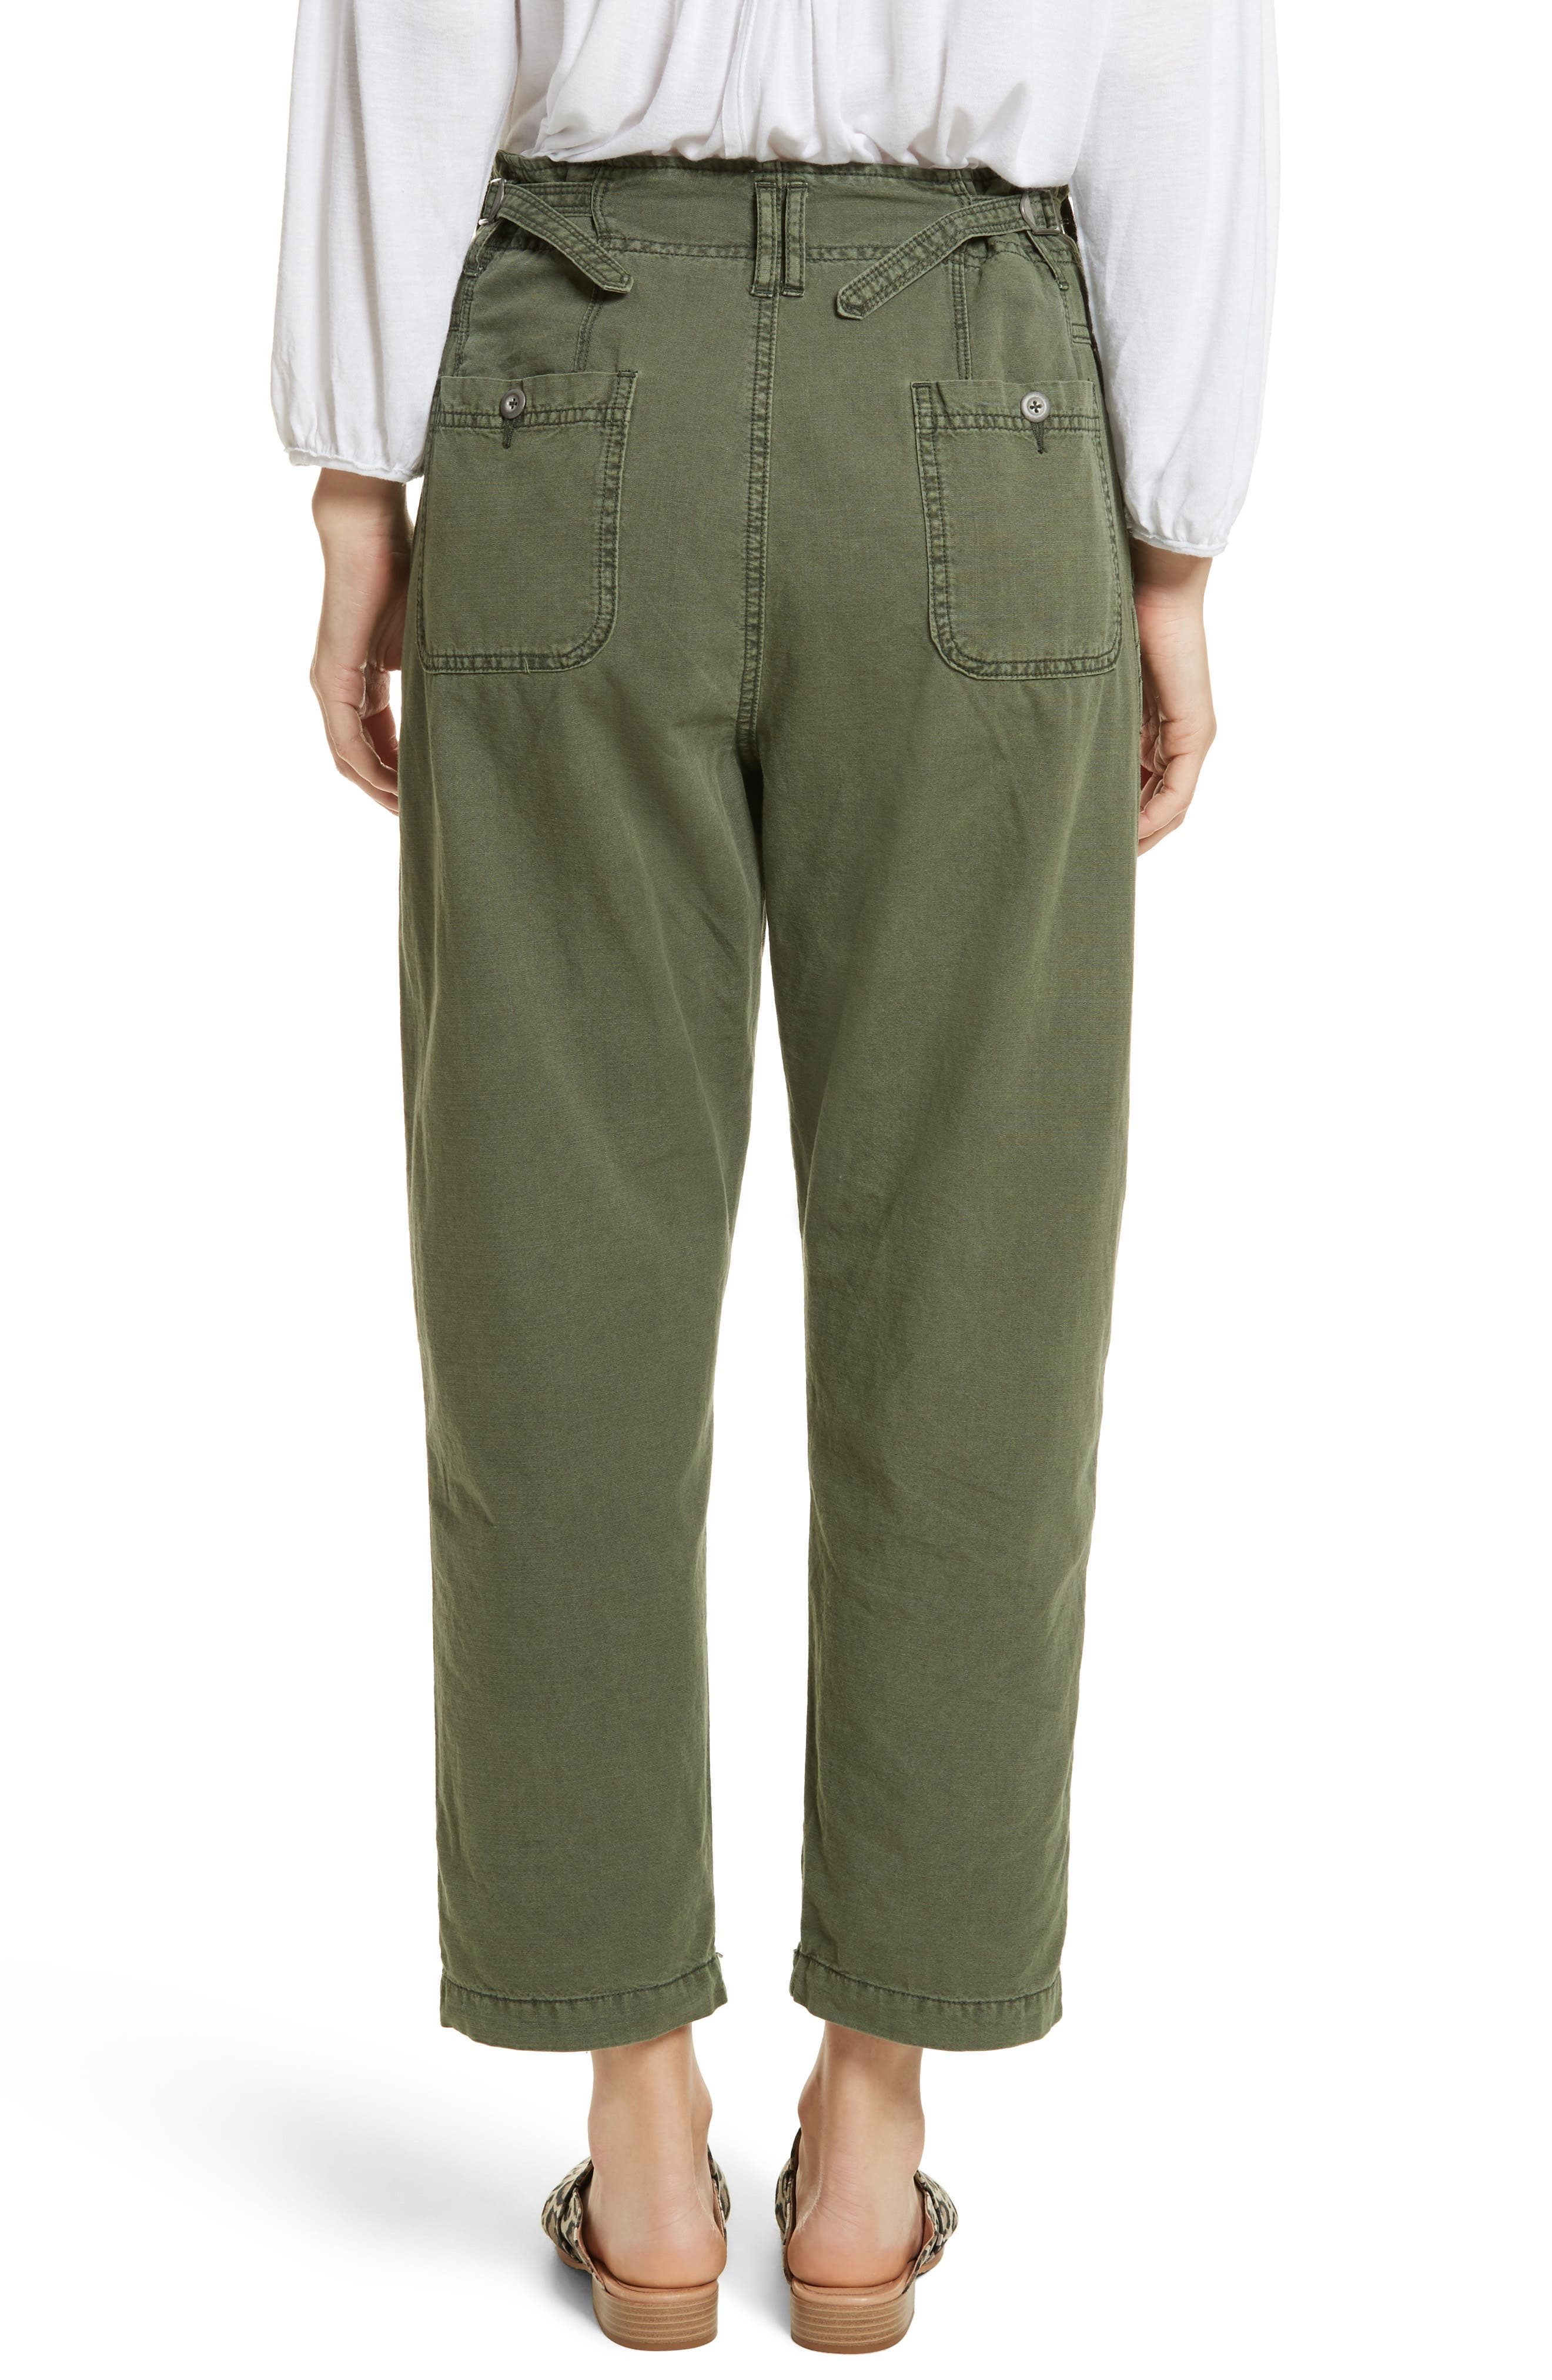 Compass Star Trousers,                             Alternate thumbnail 2, color,                             SLATE